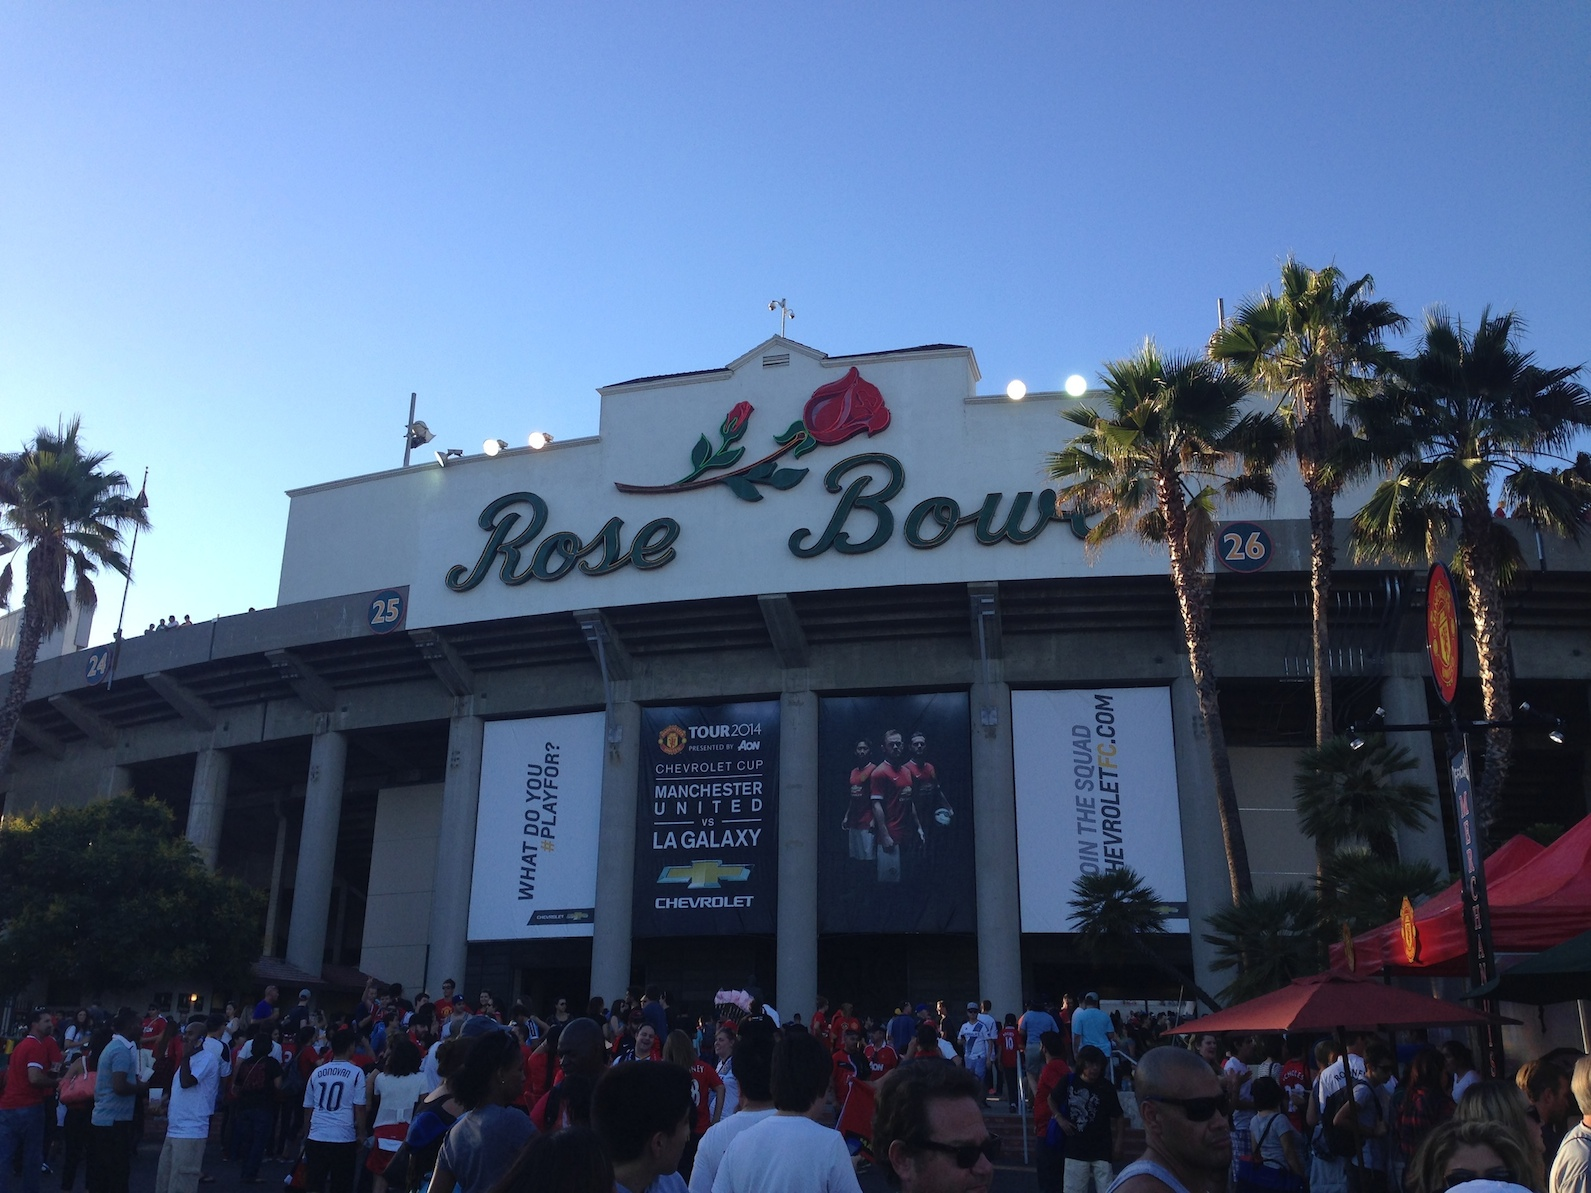 LA Galaxy 0-7 Manchester United: What the Matchday Experience Was Like at the Rose Bowl